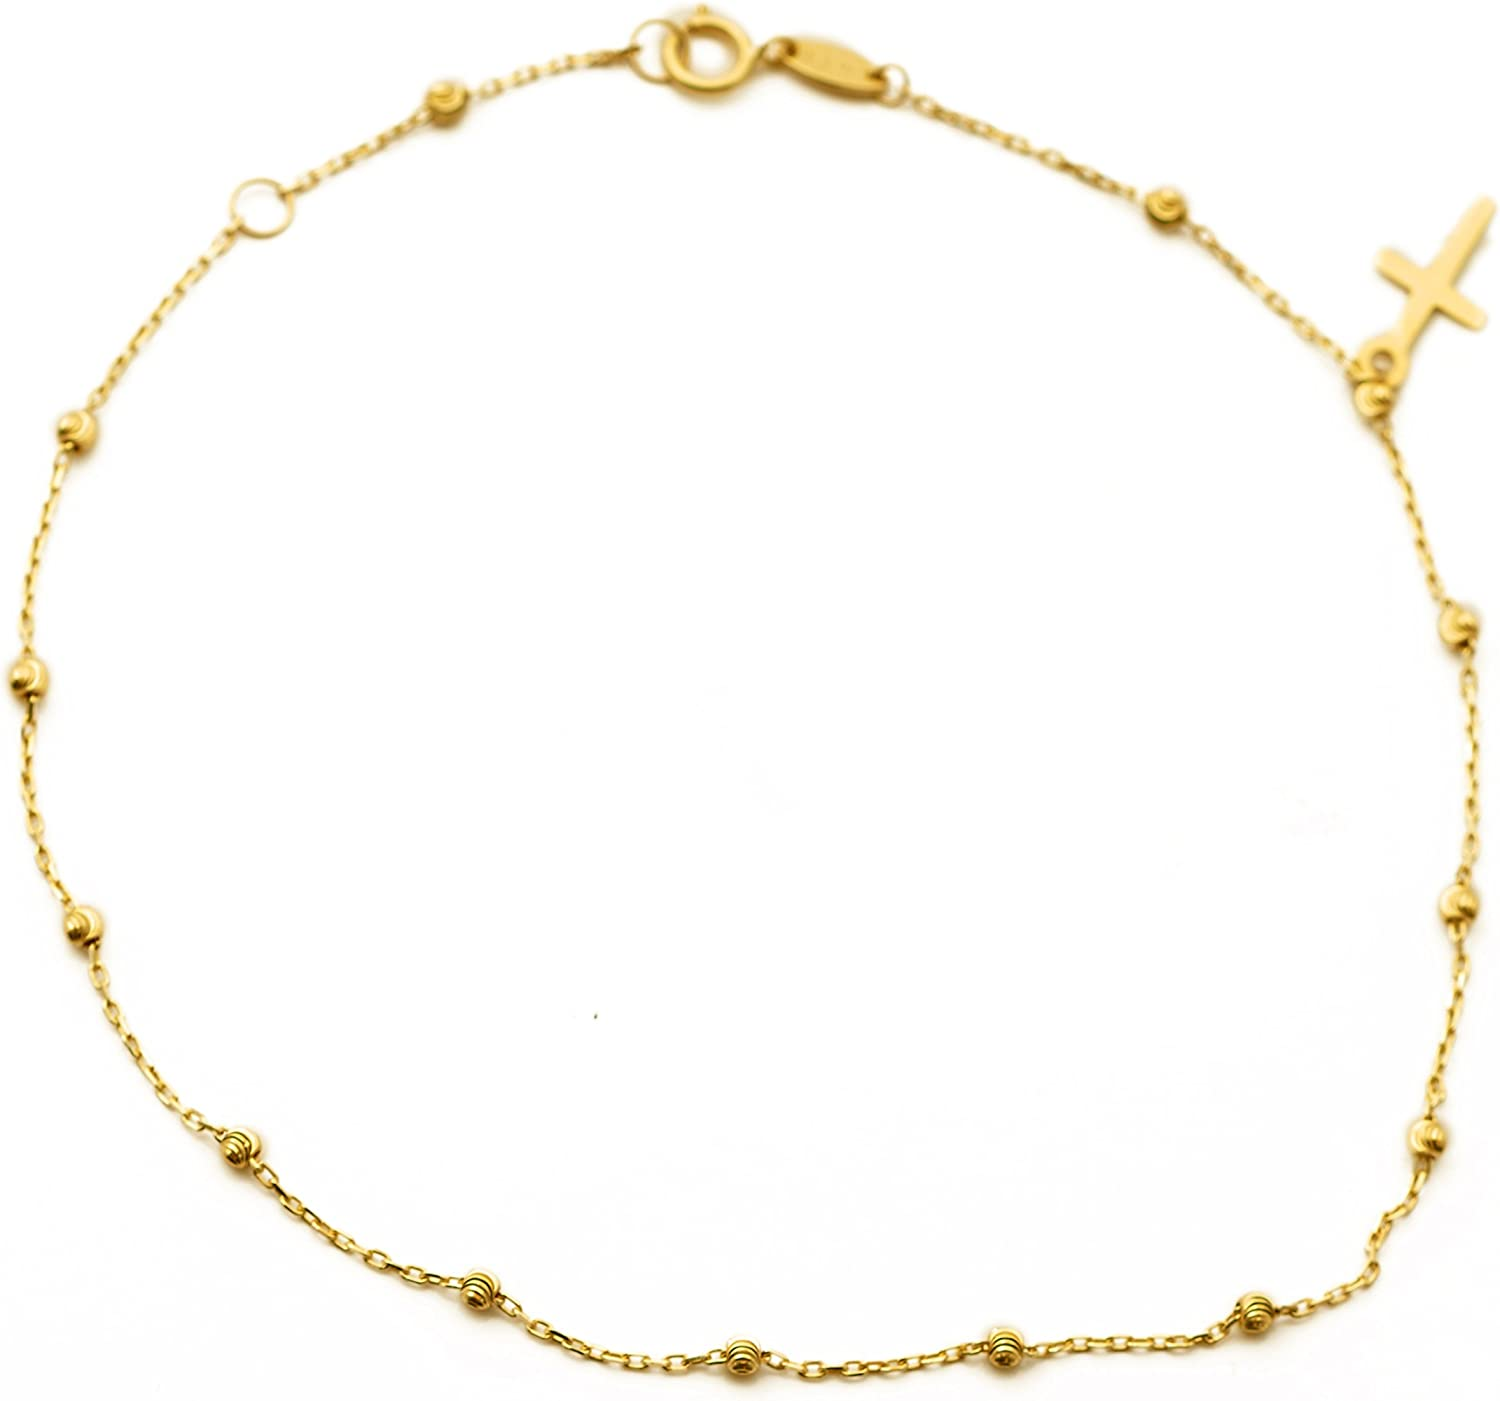 14K YELLOW GOLD ANKLET BRACELET W// DANGLING CROSS CHARM //OVERALL LENGTH 10 INCH